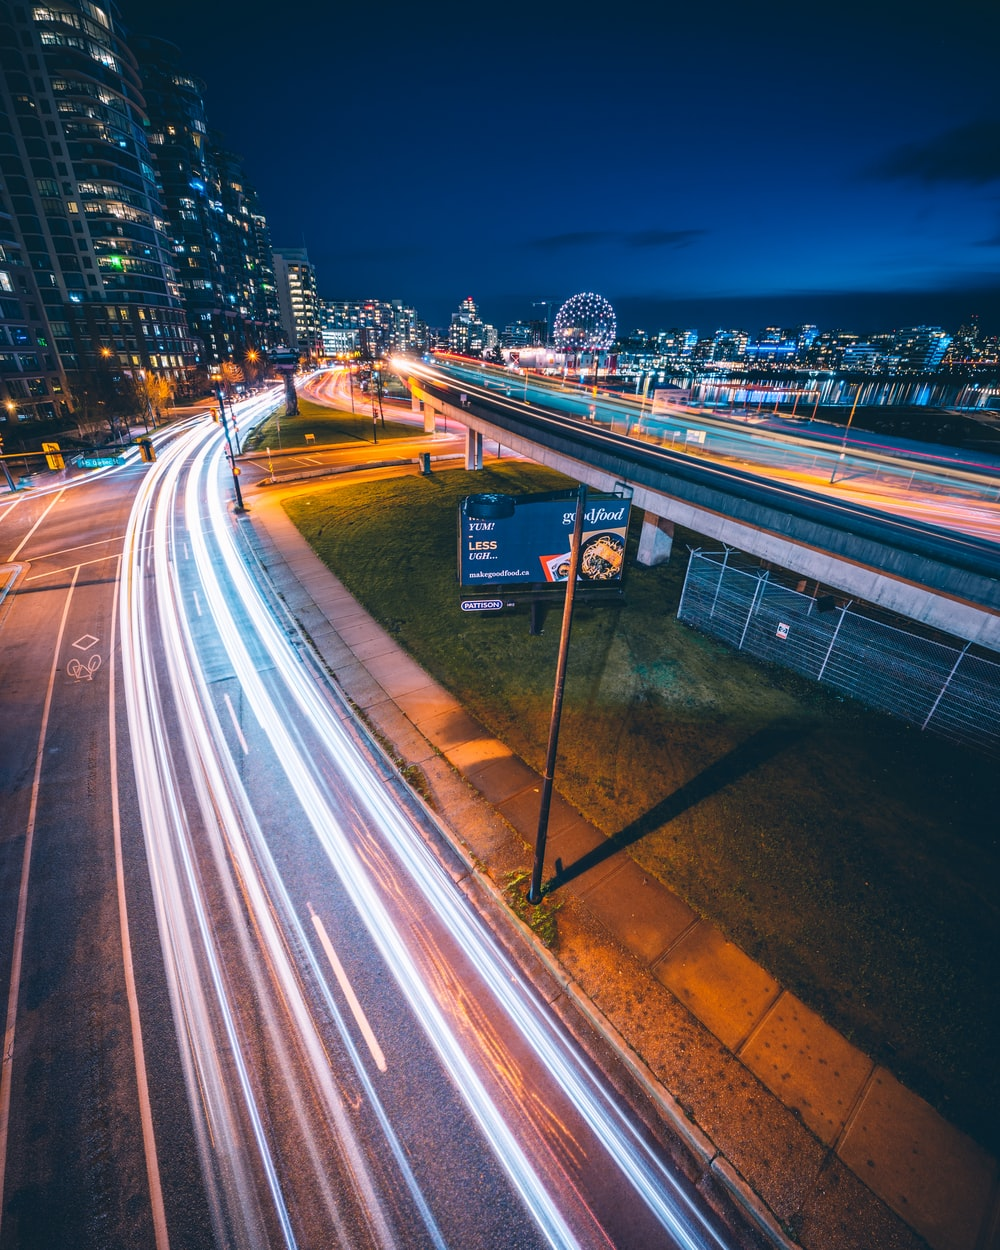 time lapse photography of cars passing on road